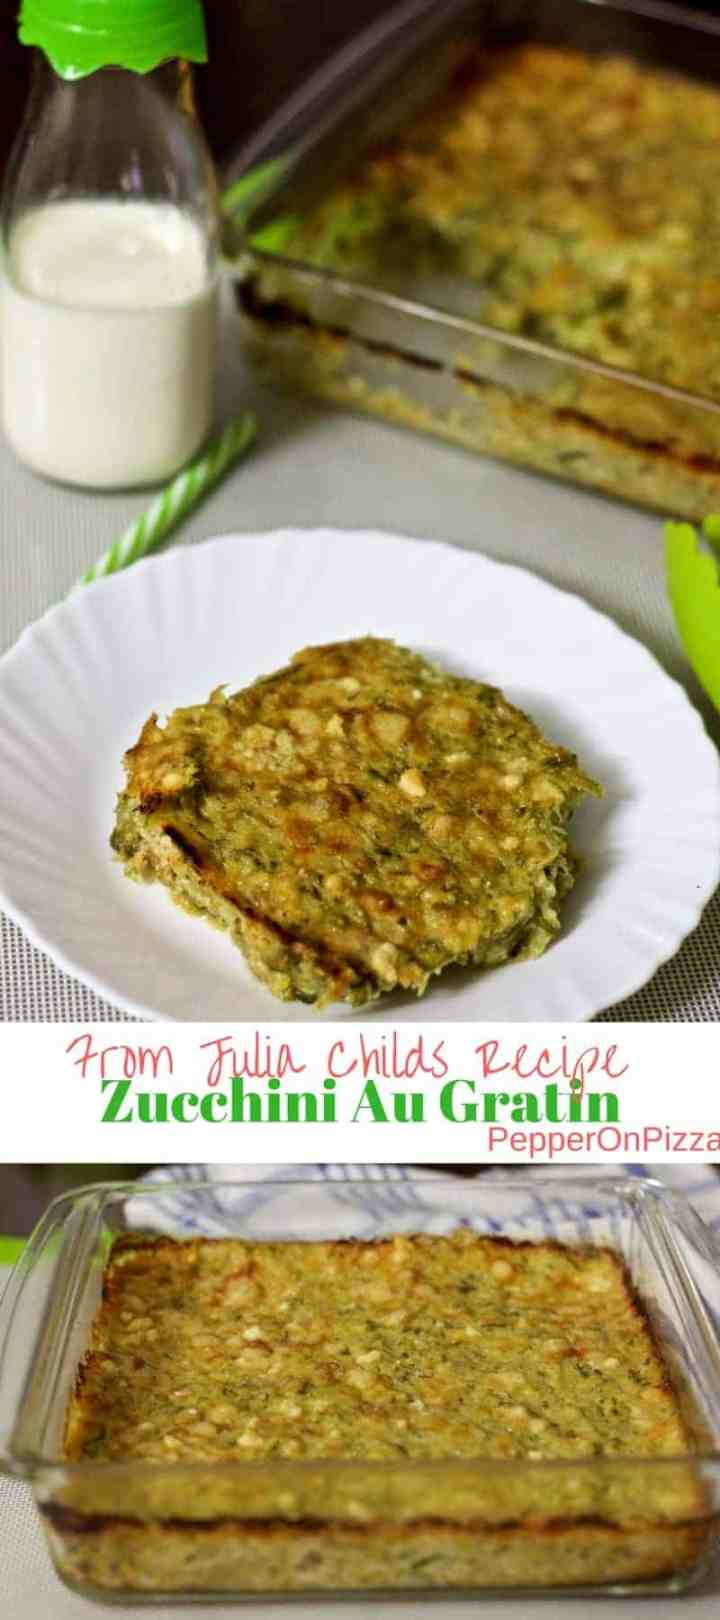 Delicious Zucchini au gratin -Green zucchini grated and tossed in a buttery creamy veloute sauce and baked with Parmesan cheese